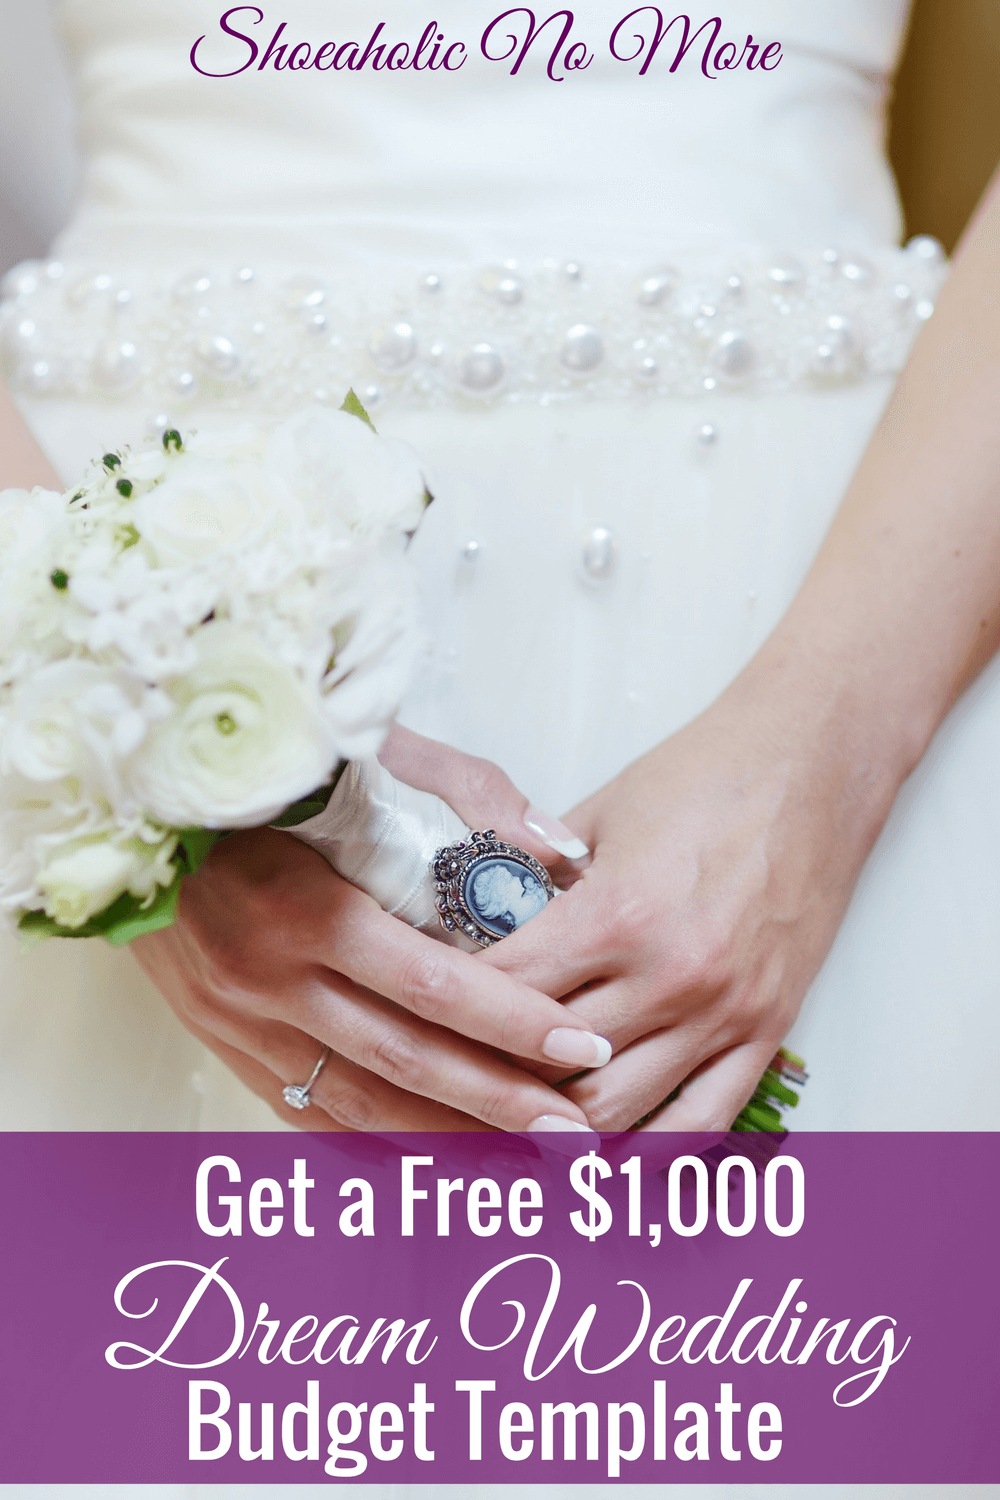 This is an awesome wedding budget template. I can't believe everything you can get for only $1,000!